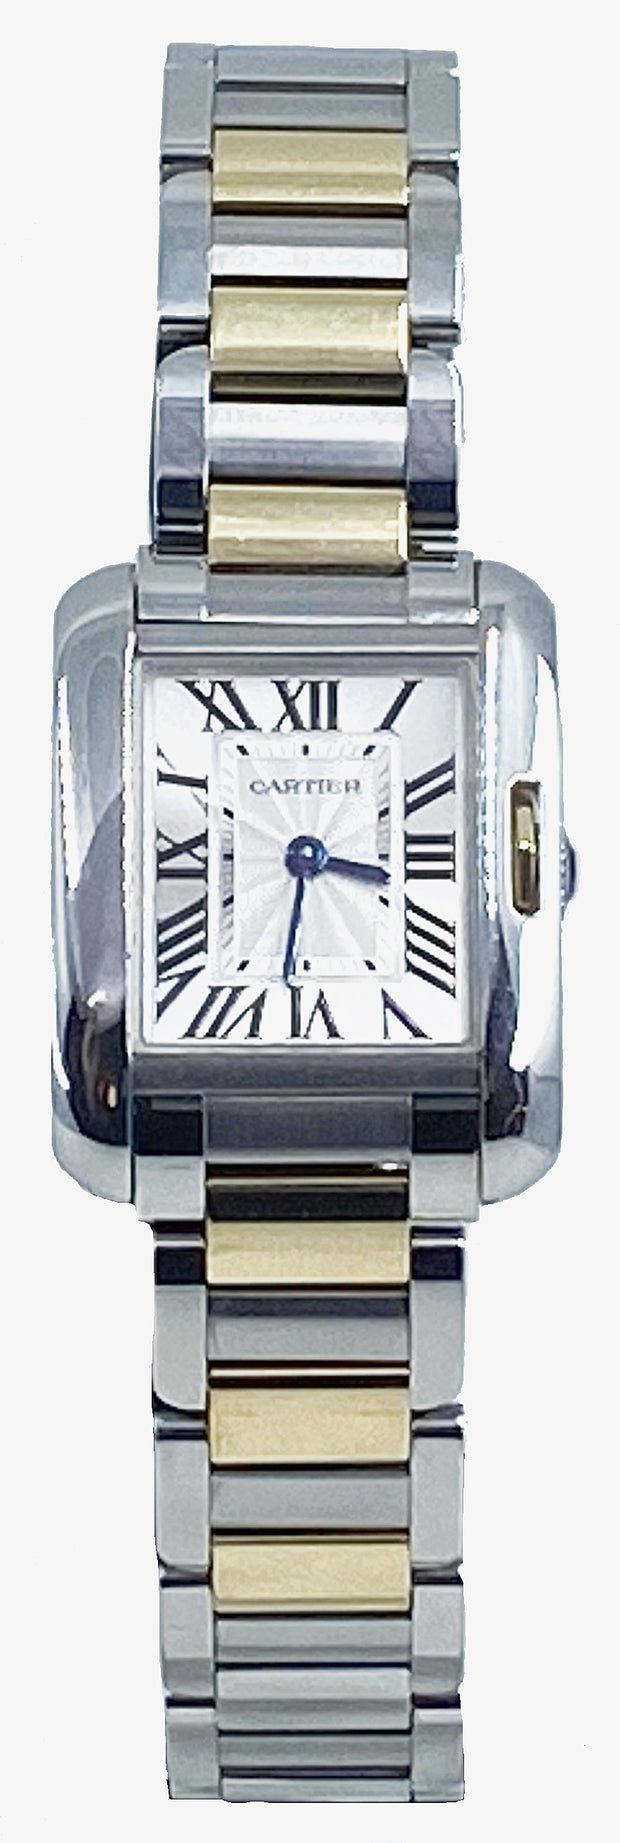 Cartier Tank Anglaise Reference 3485